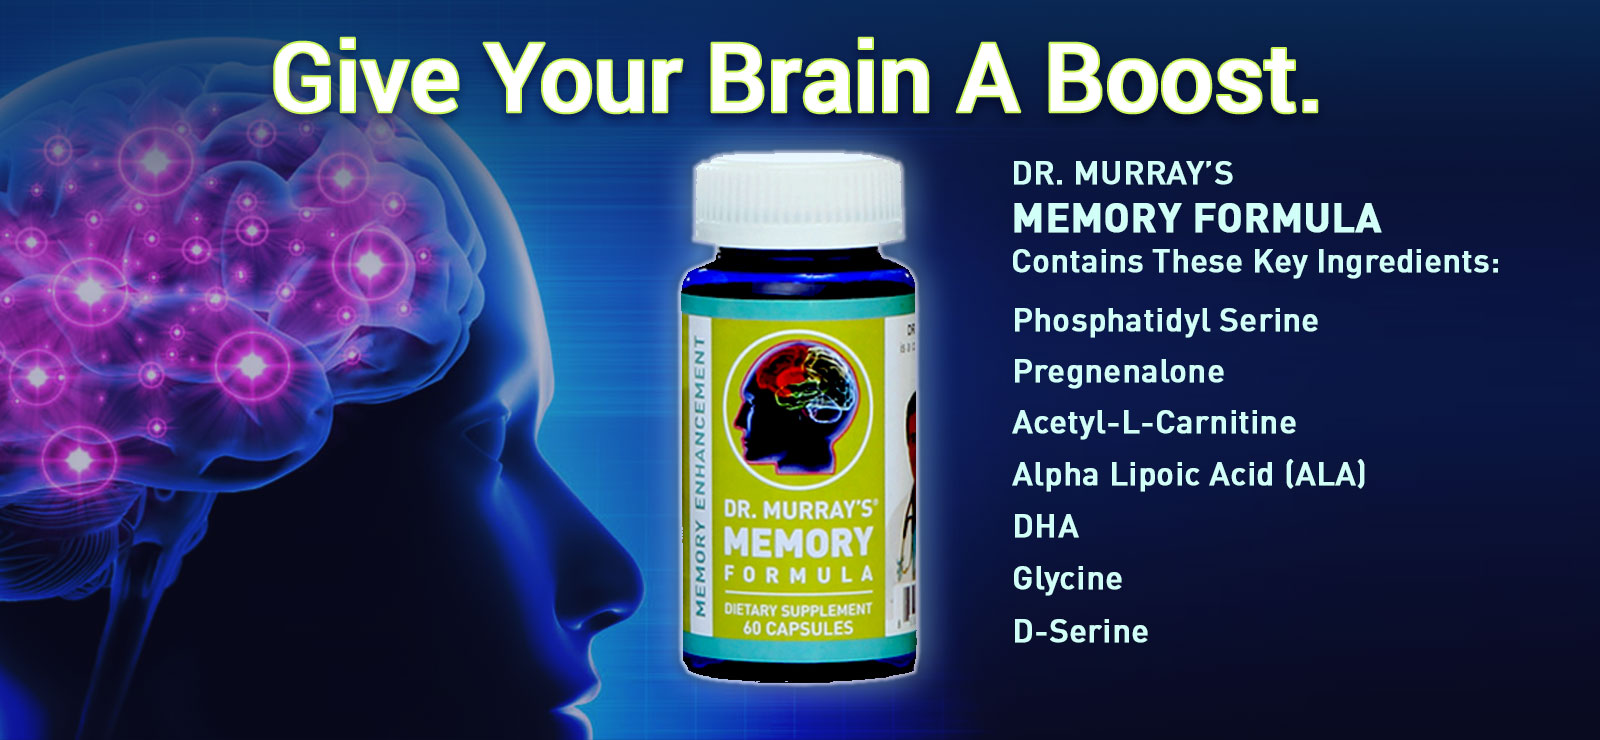 Boost your brain function with Dr. Murray's Memory Enhancement Formula